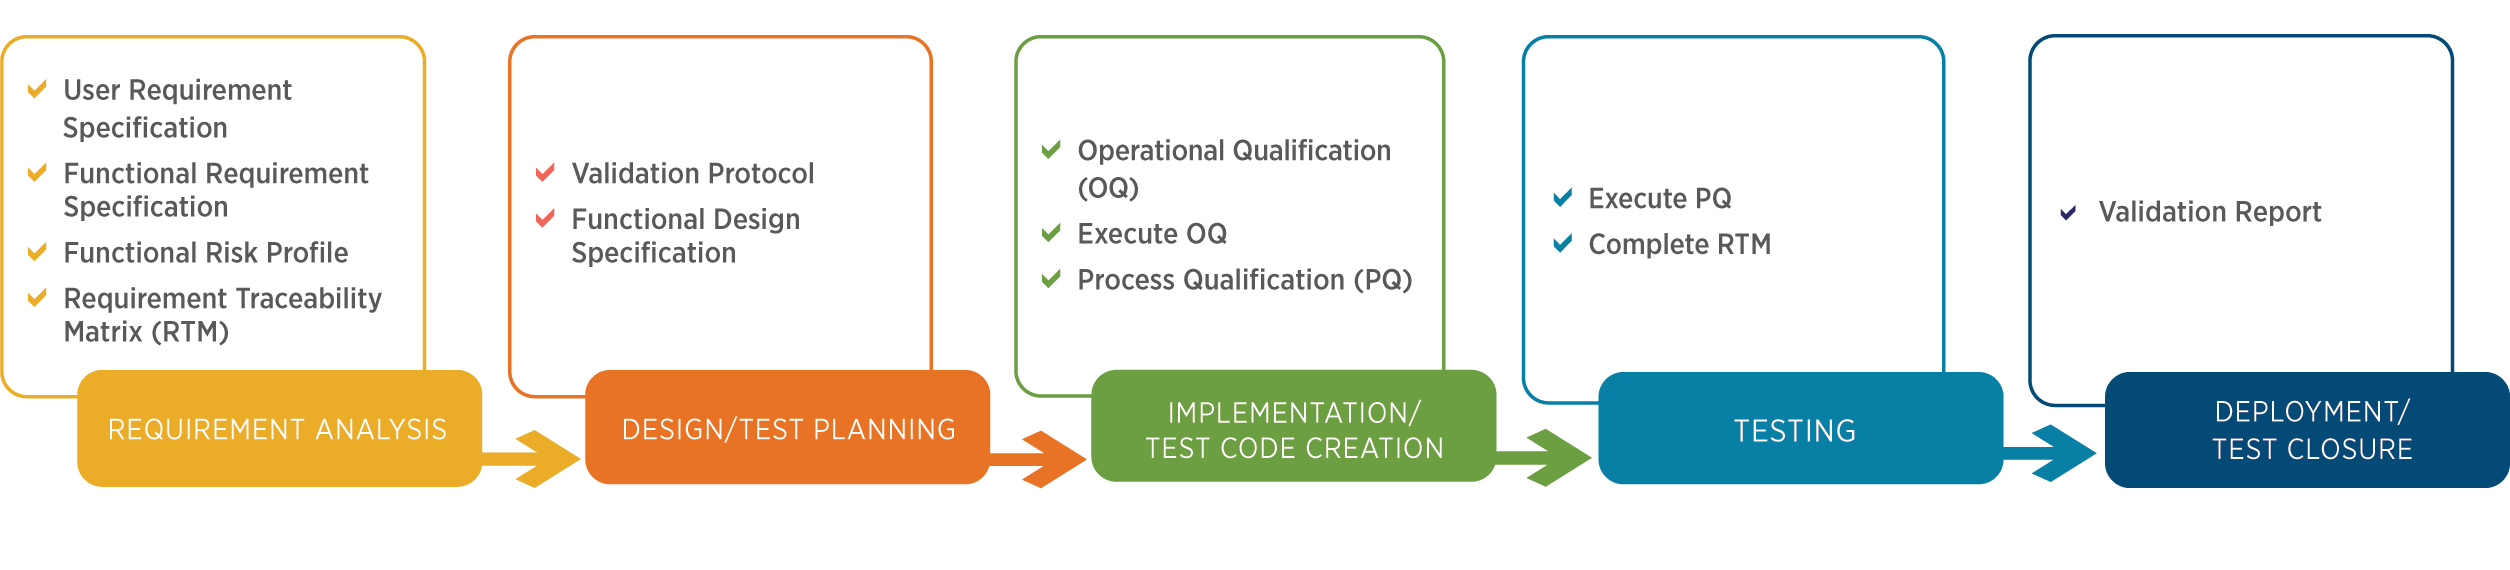 AssurX Validation Services | PQ | IQ | OQ | QMS